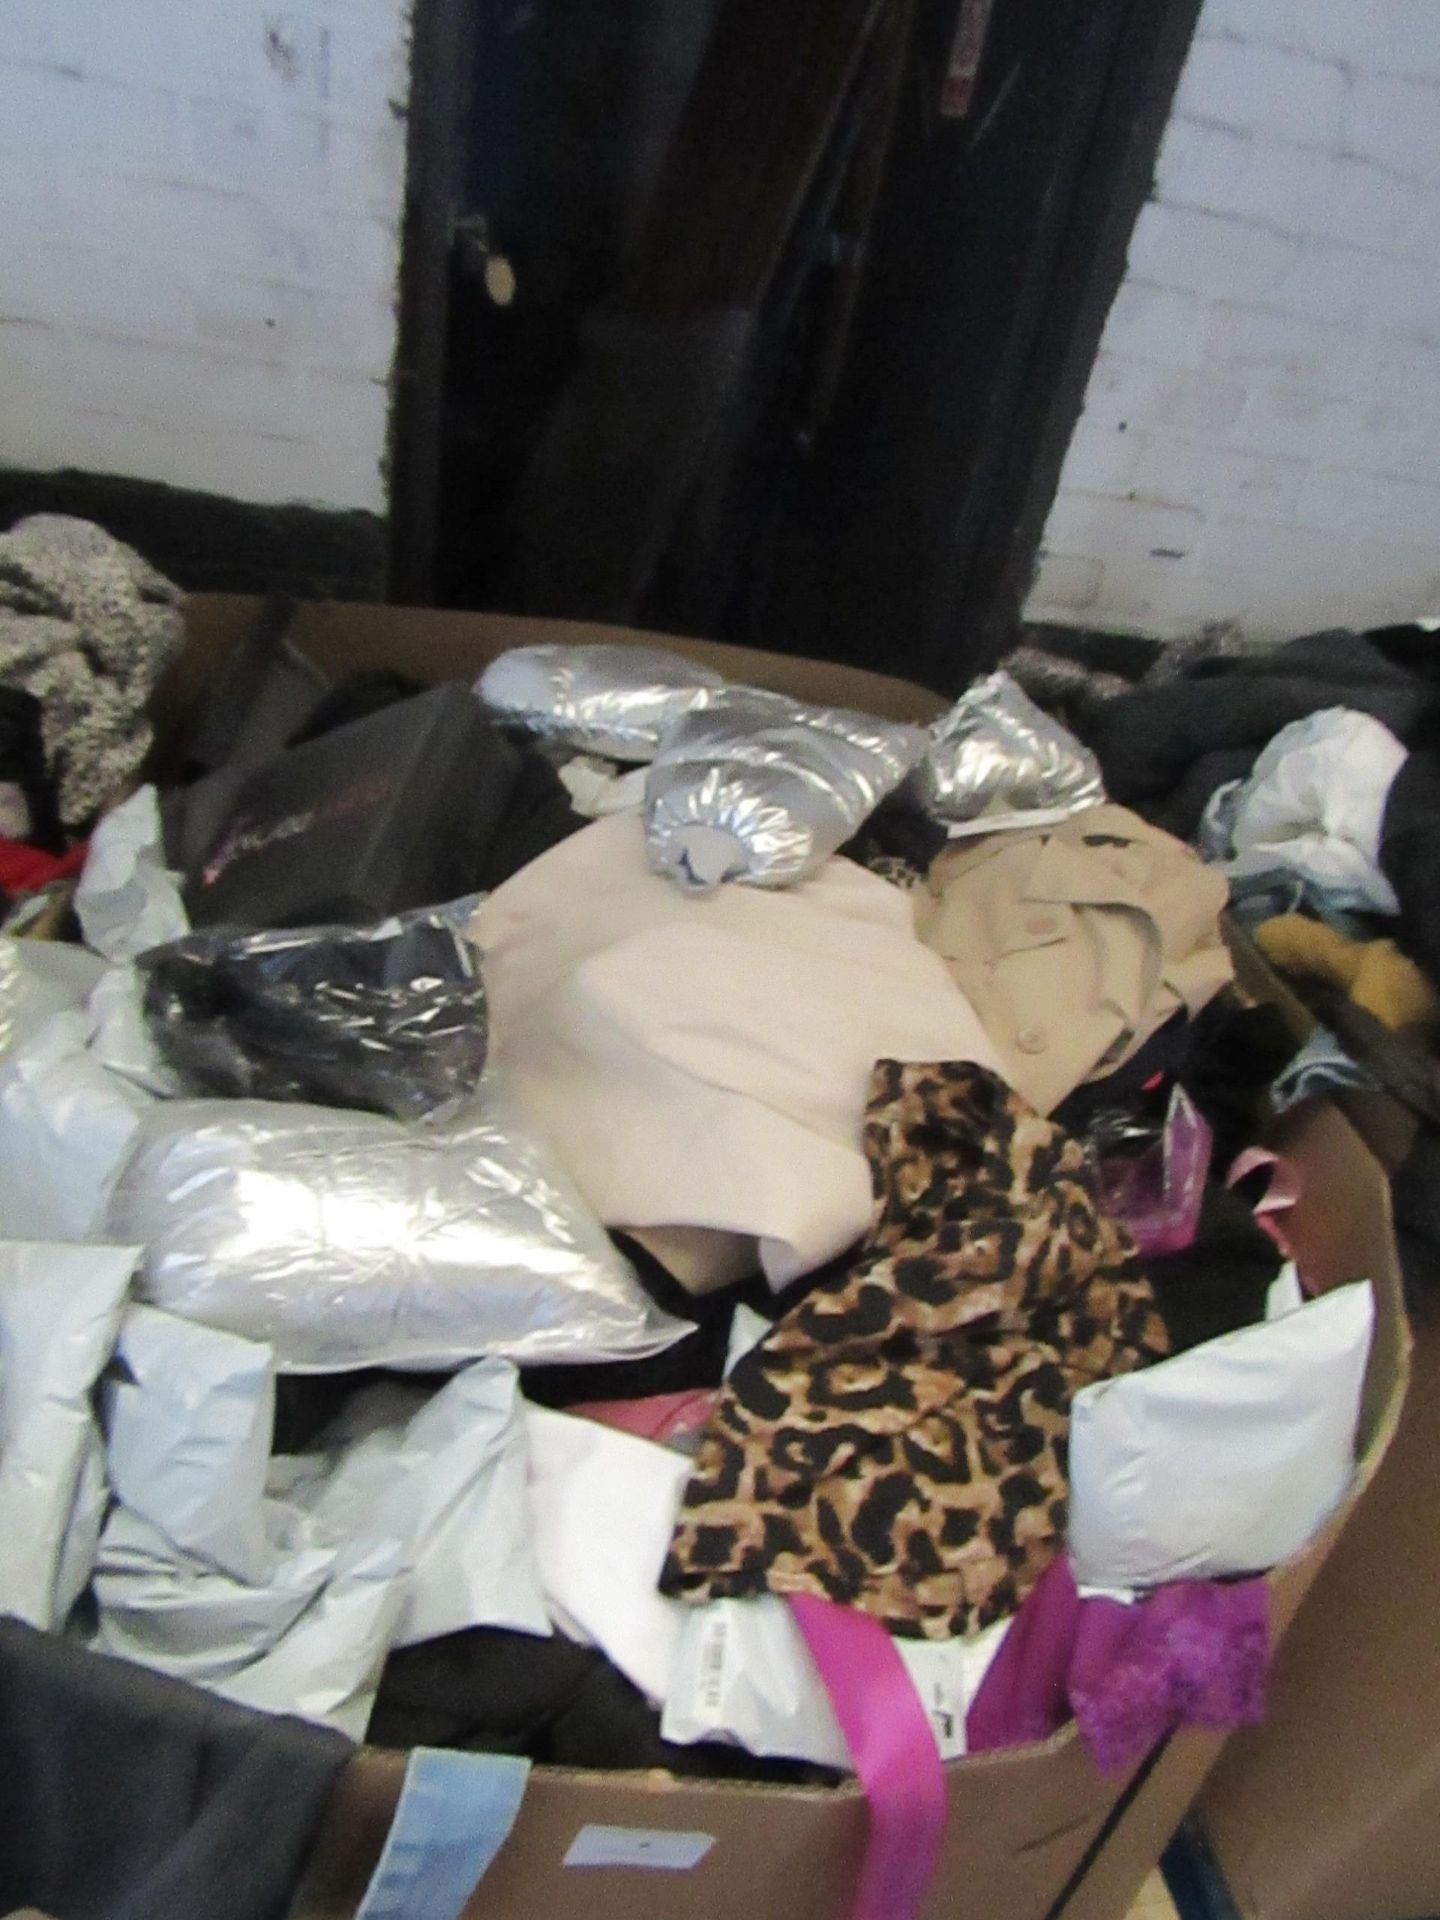 Pallet of approx 300 pieces of various clothing, these pallets usually contain a mixture of mens, - Image 2 of 2